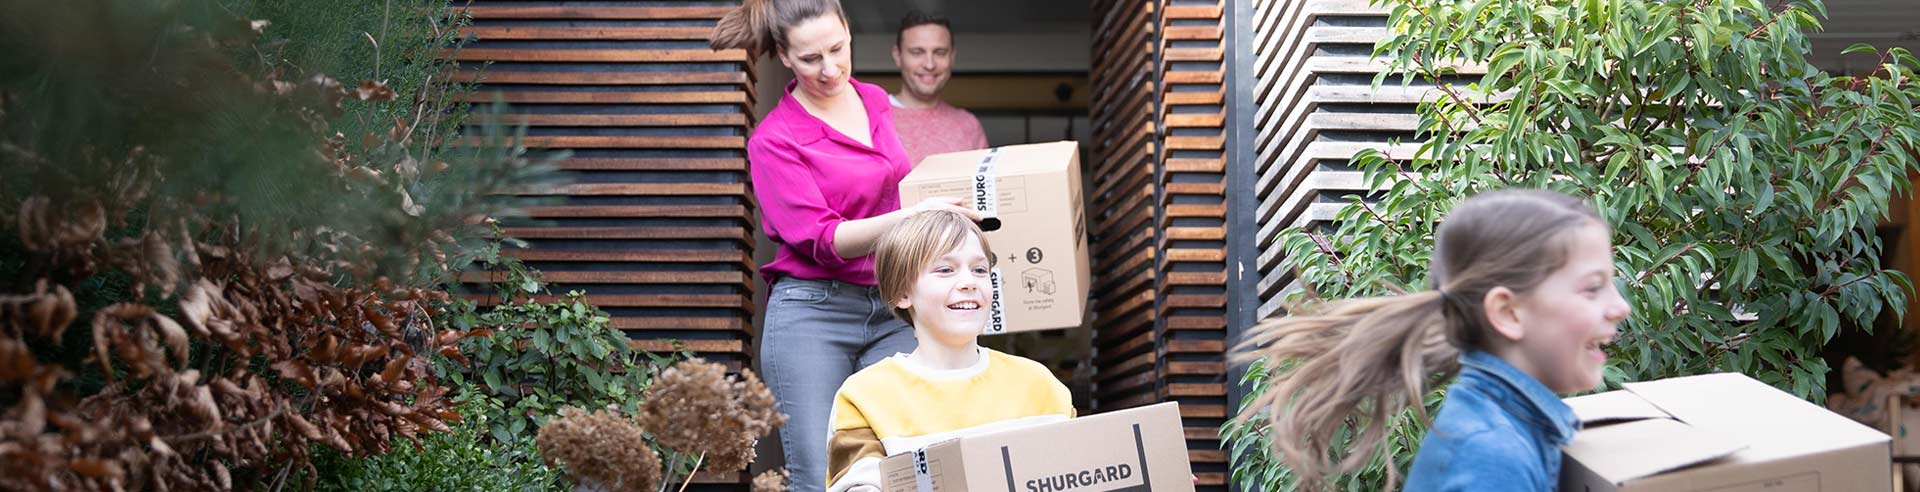 Moving house with Shurgard